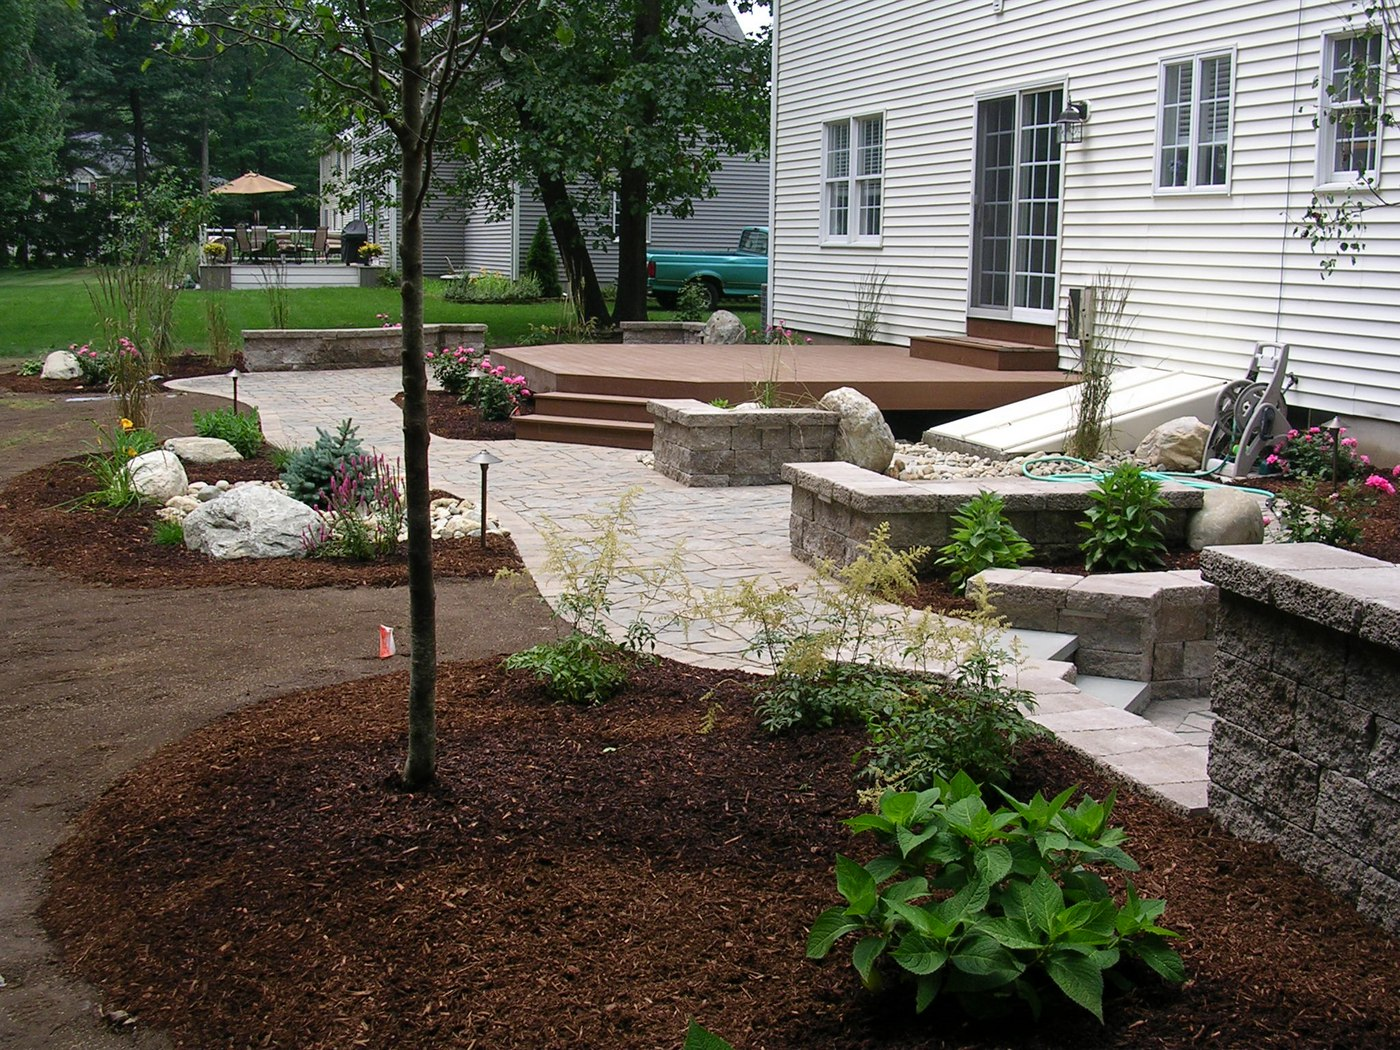 outdoor living pavers patio outdoor kitchen landscaping hardscaping